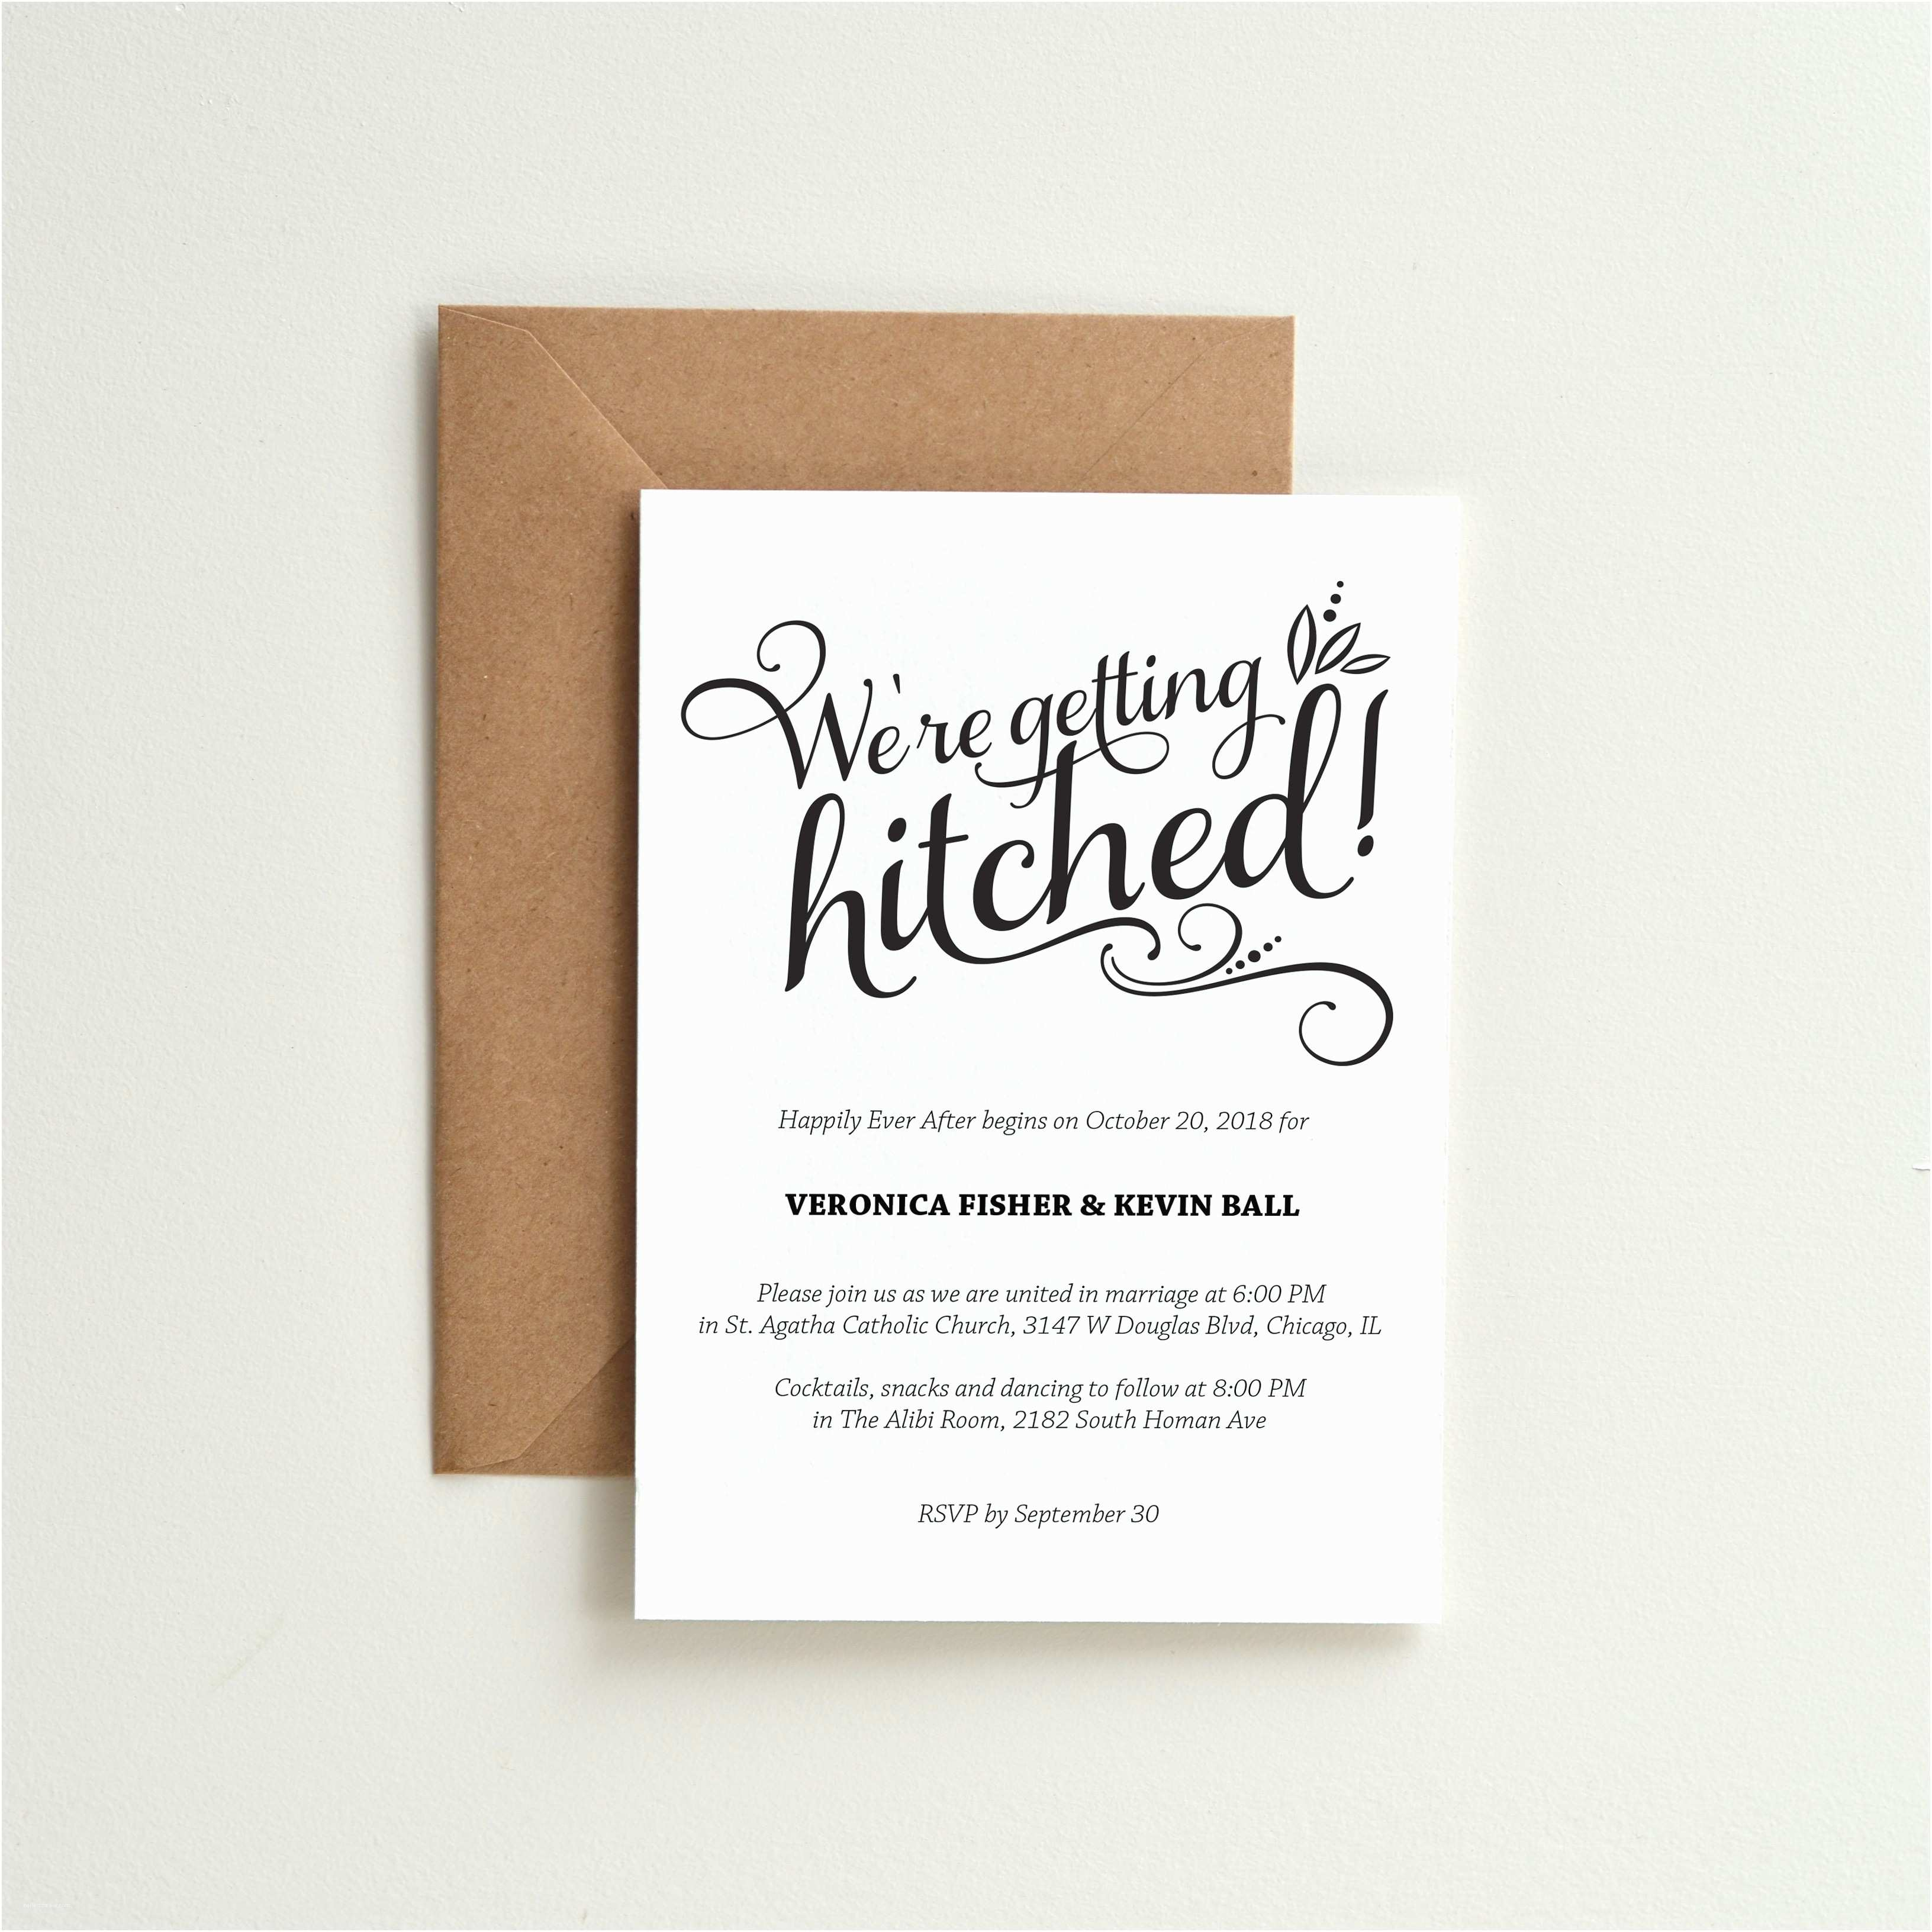 Wedding Invitation Time 13 Funny Wedding Invitations Perfect for Every Sense Of